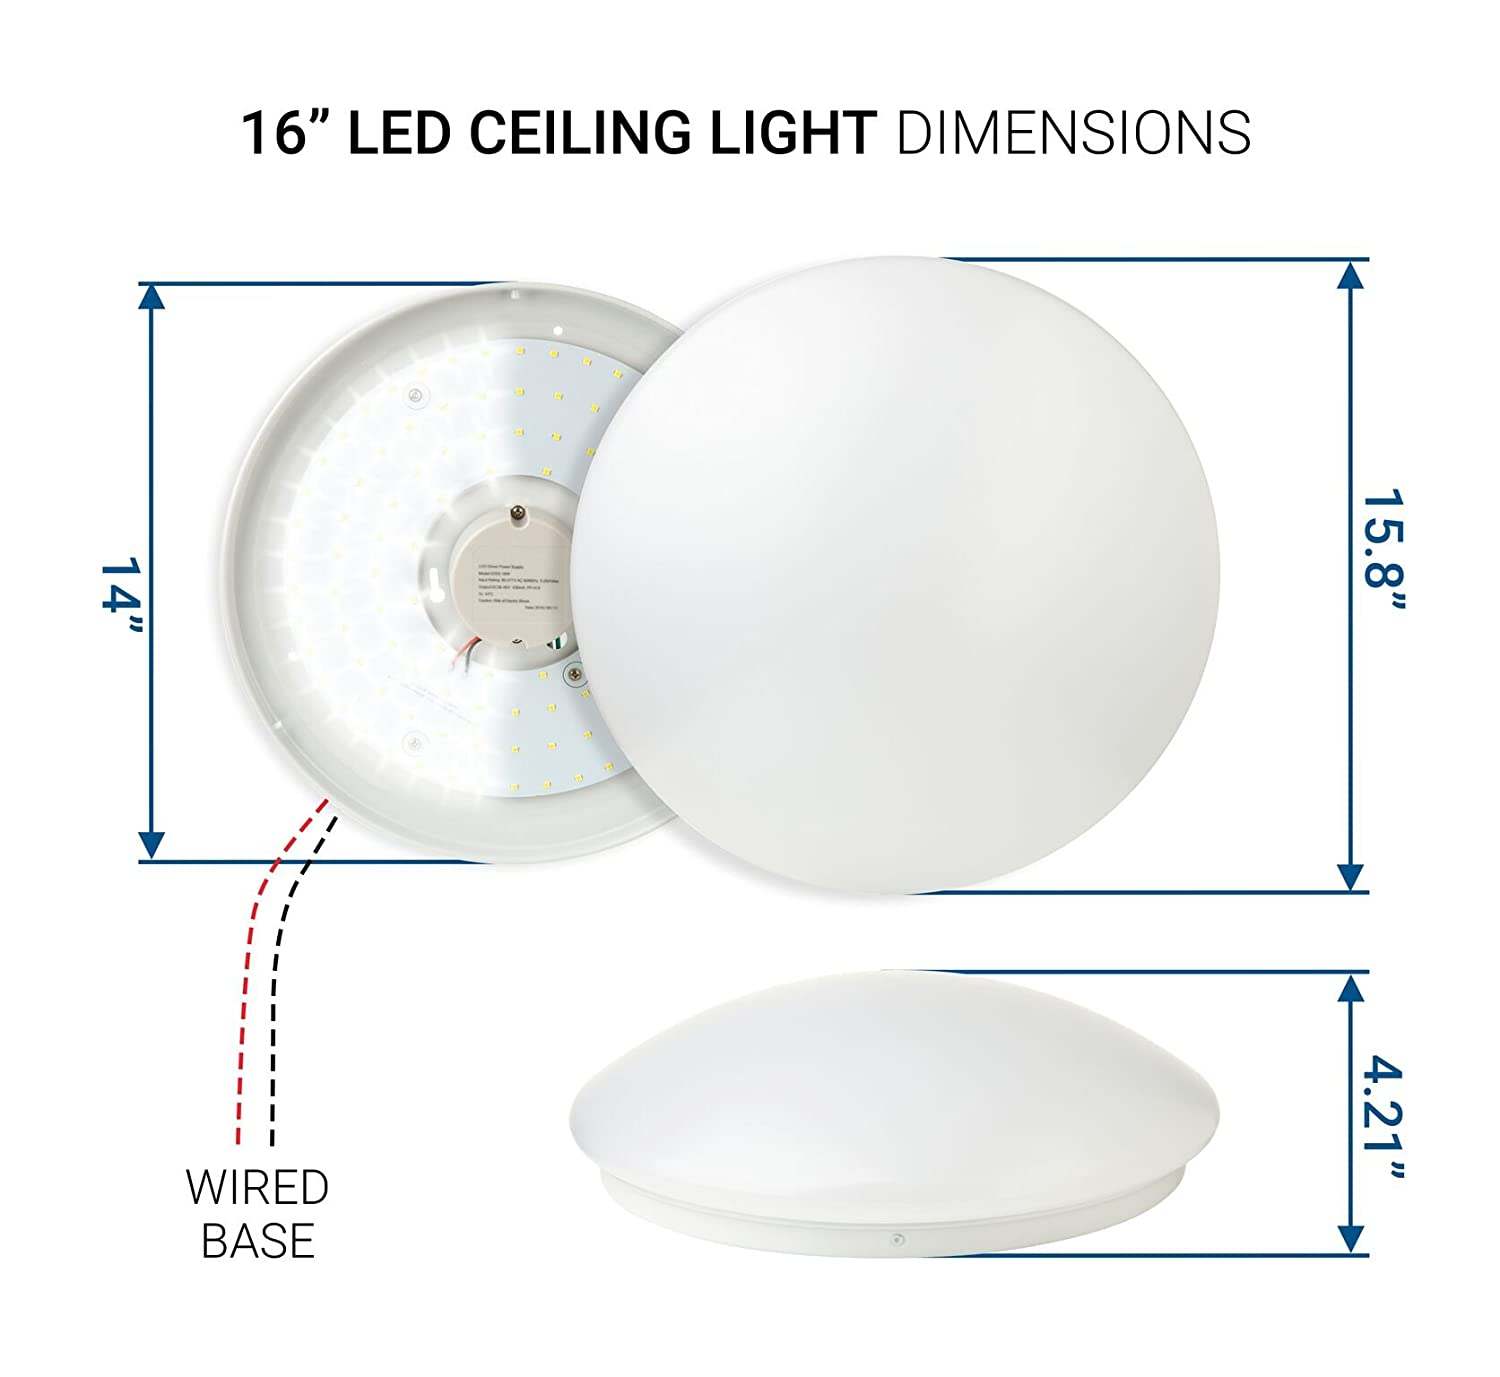 Hyperikon Led Flush Mount Ceiling Light 16 35w 150w Equivalent Pmi Wiring Diagram 3100lm 4000k Daylight Glow 120 Beam Angle 240v Ul Listed Inch